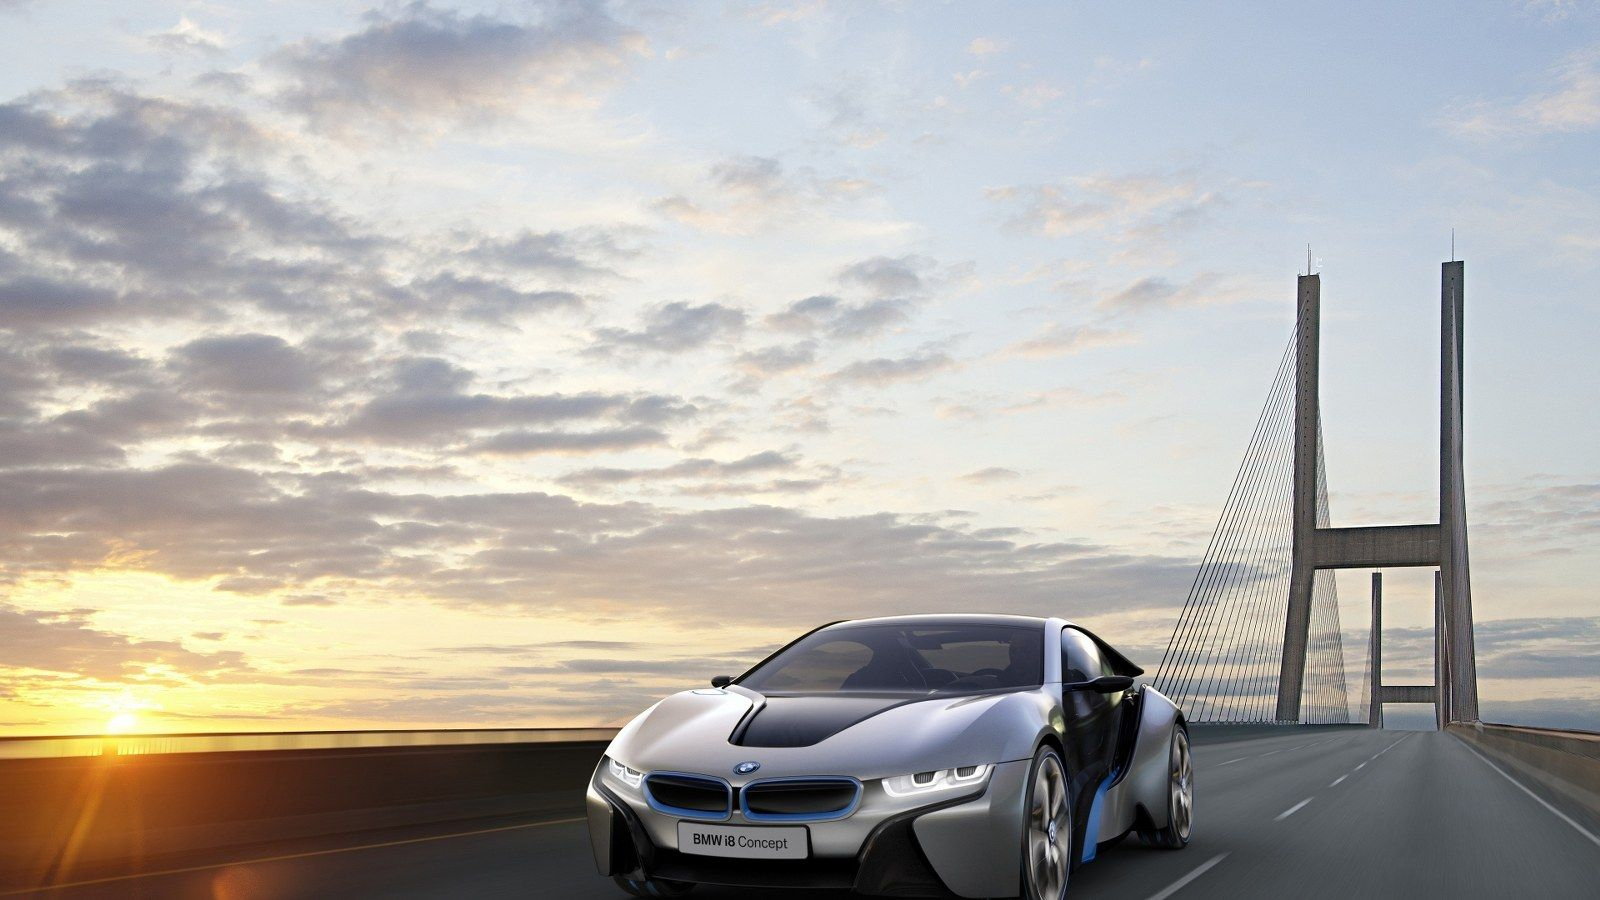 Future Cars Wallpapers Top Free Future Cars Backgrounds